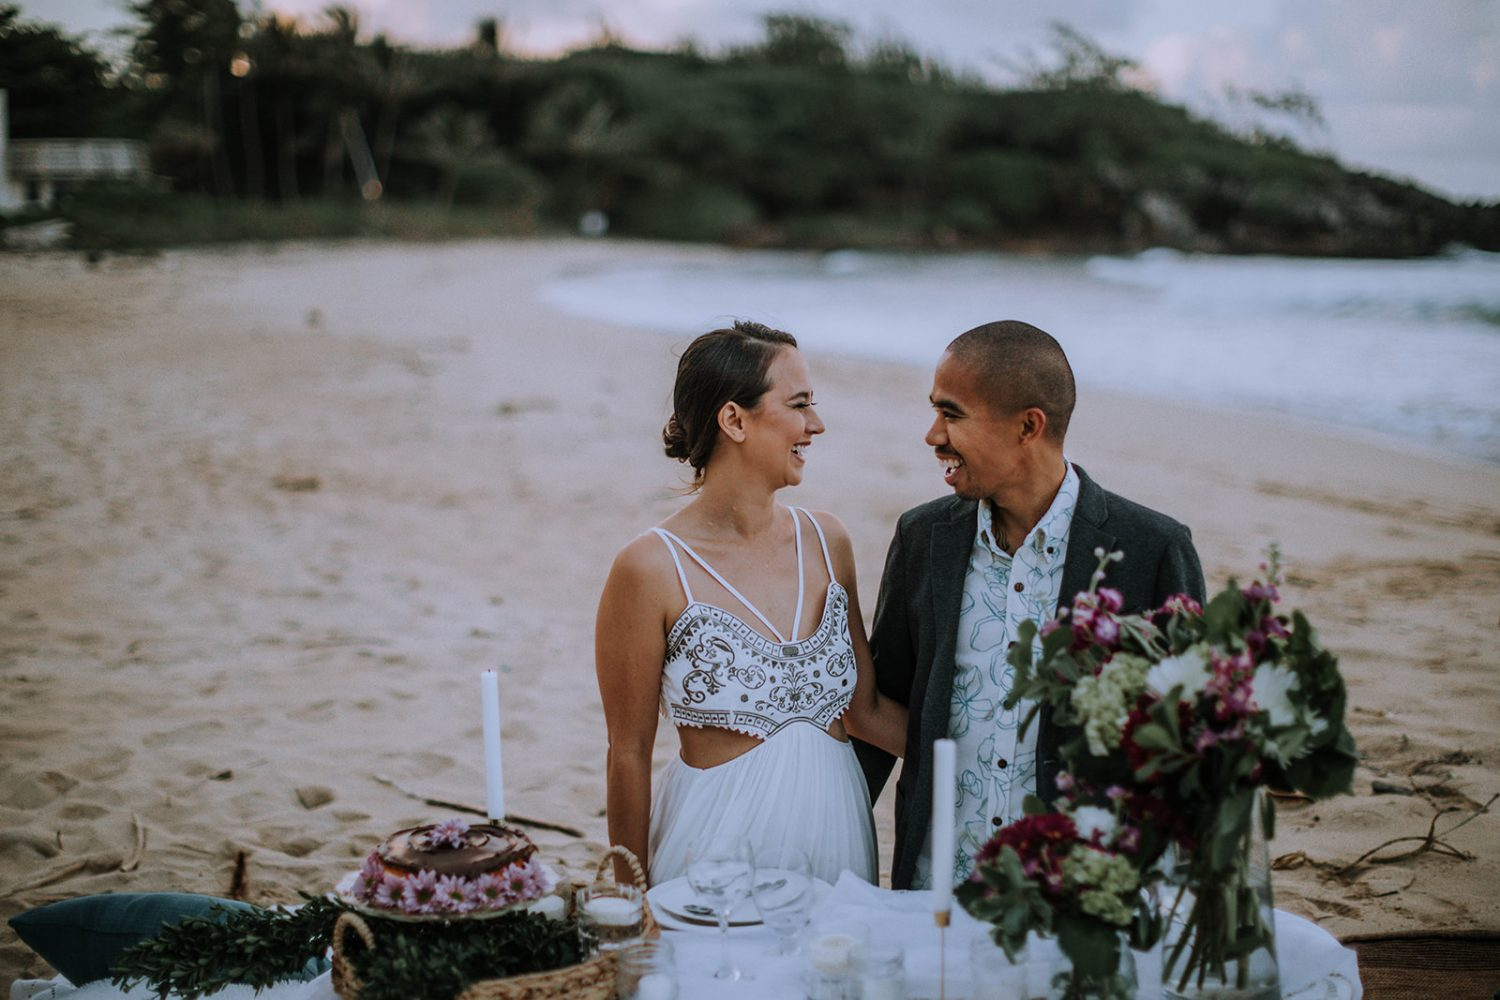 How to Elope on Oahu, Hawaii by Anela Benavides Photography. Includes posing inspiration for an elopement & elopement planning tips. Book your couples session and browse the blog for more inspiration #elopement #photography #elopementphotography #Hawaiiphotographer #tipsforphotographers